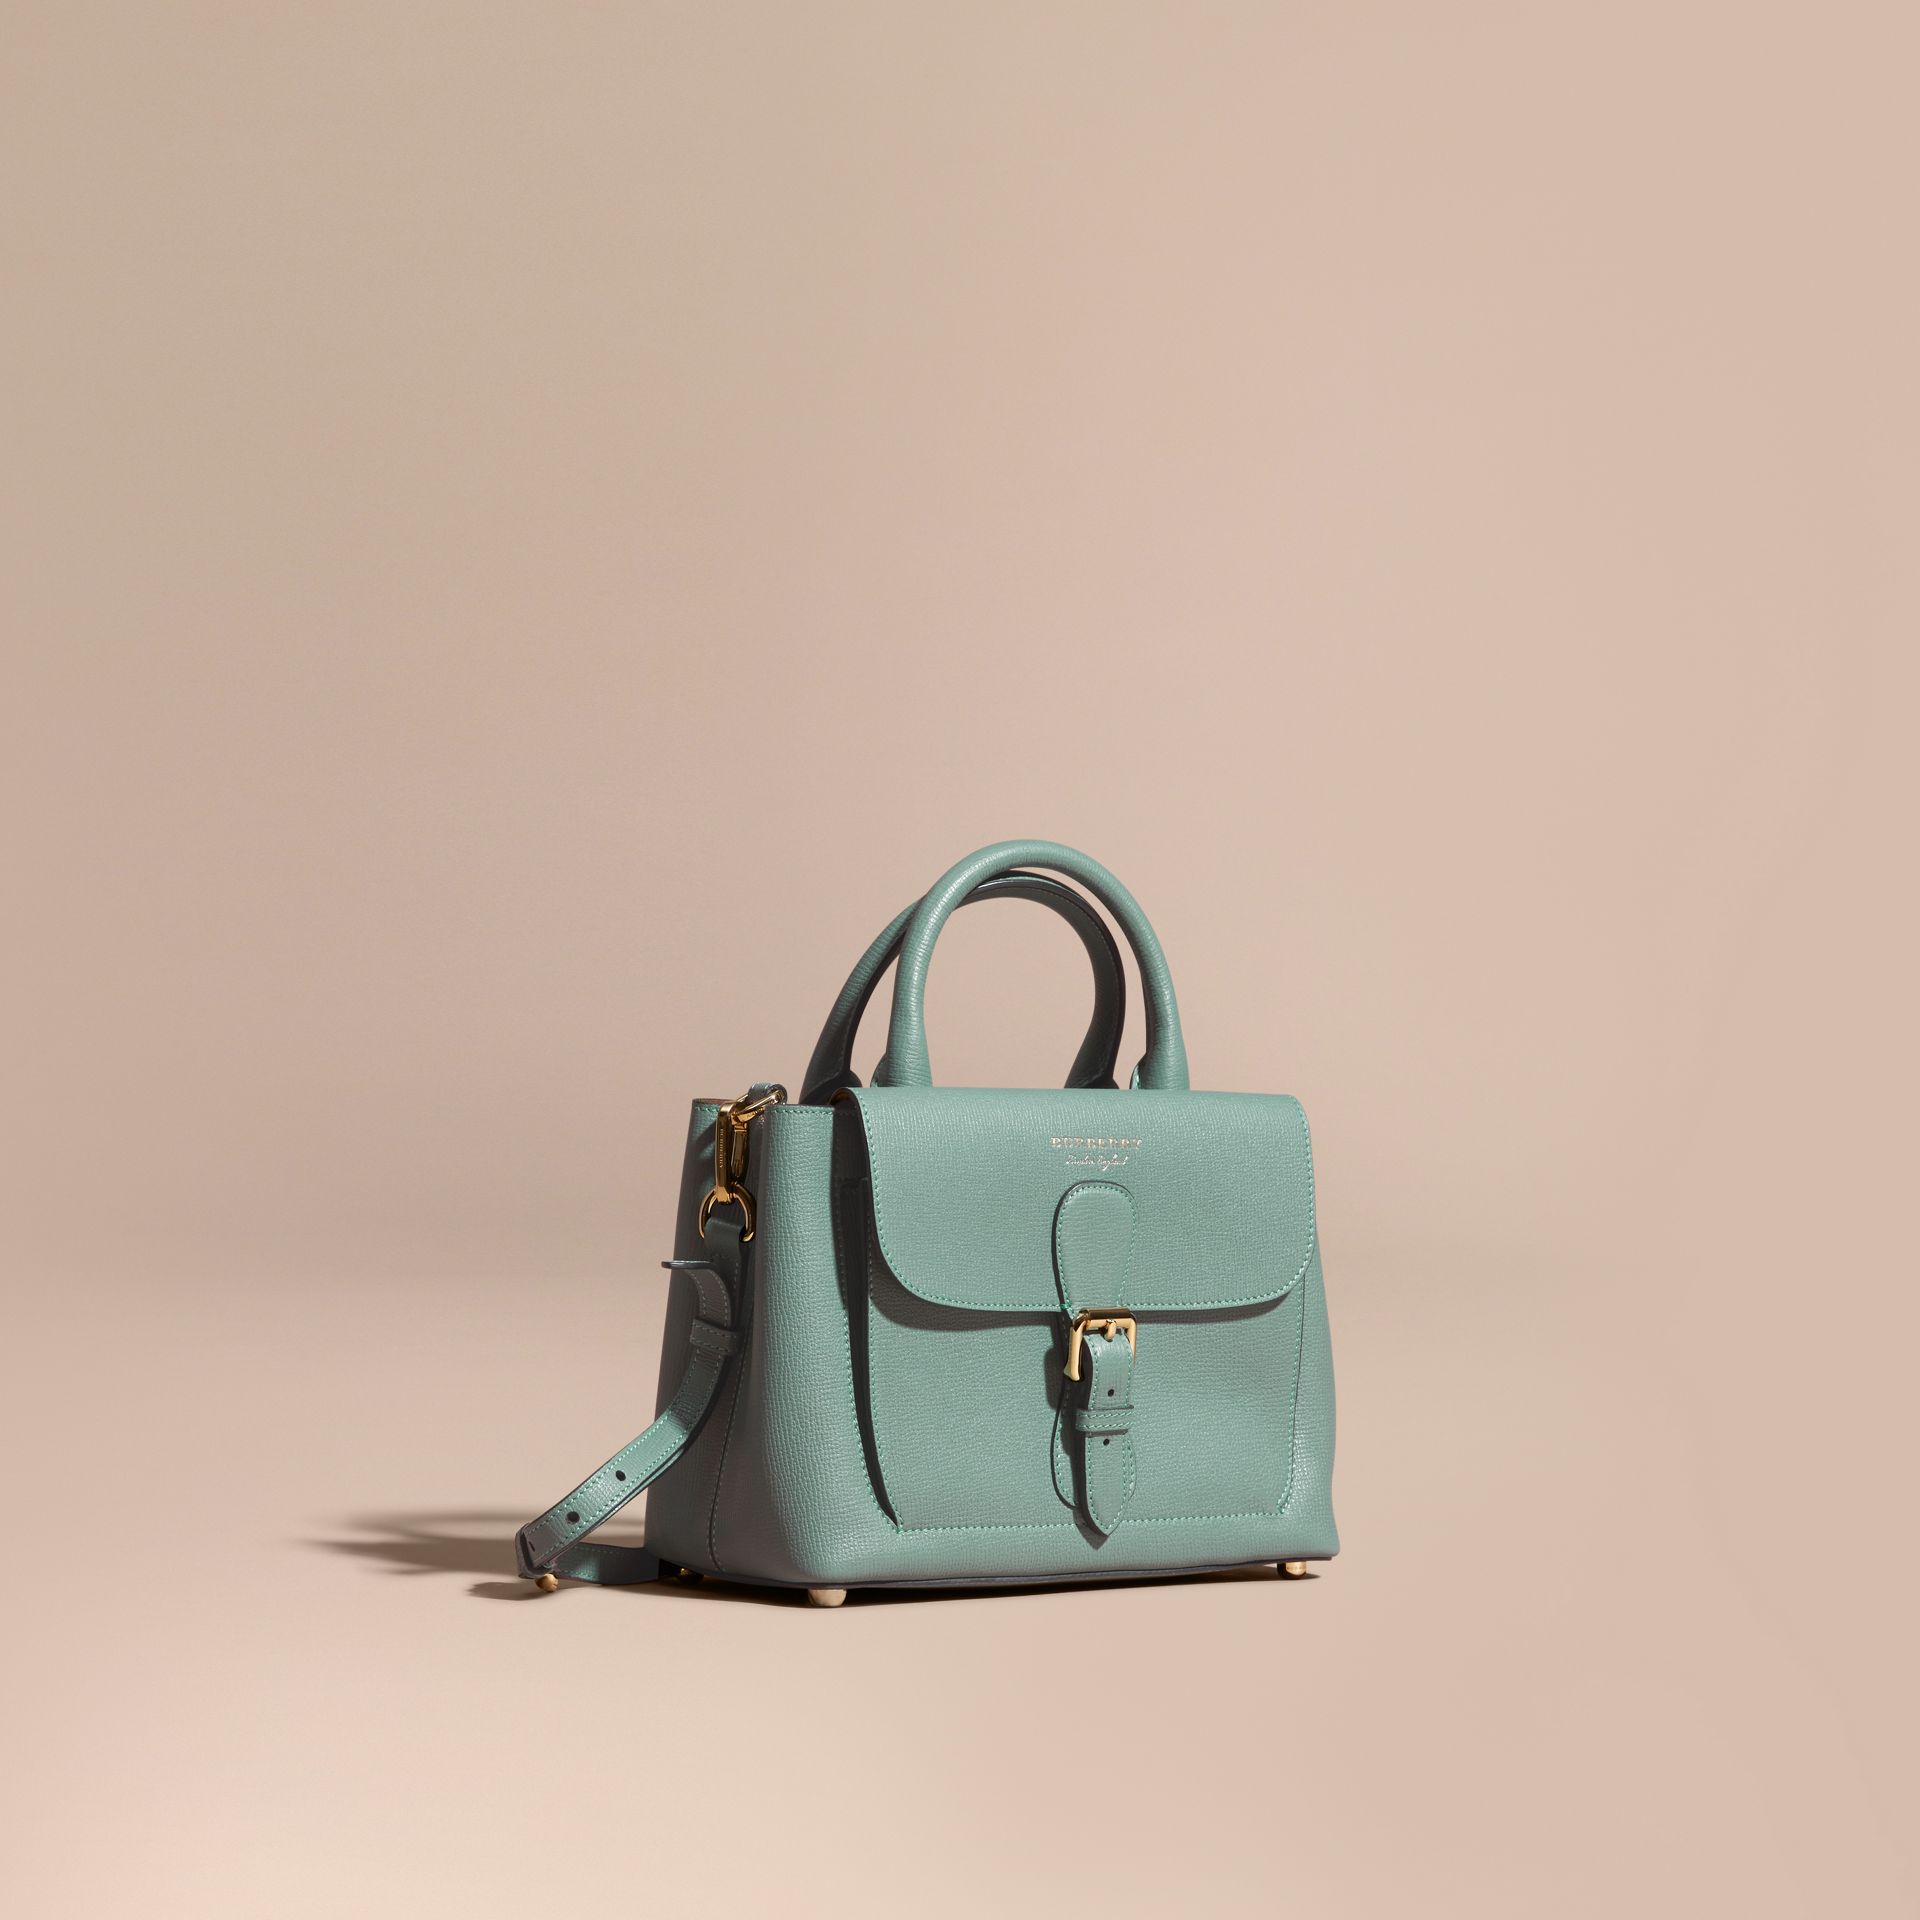 Smokey green The Small Saddle Bag in Grainy Bonded Leather Smokey Green - gallery image 1